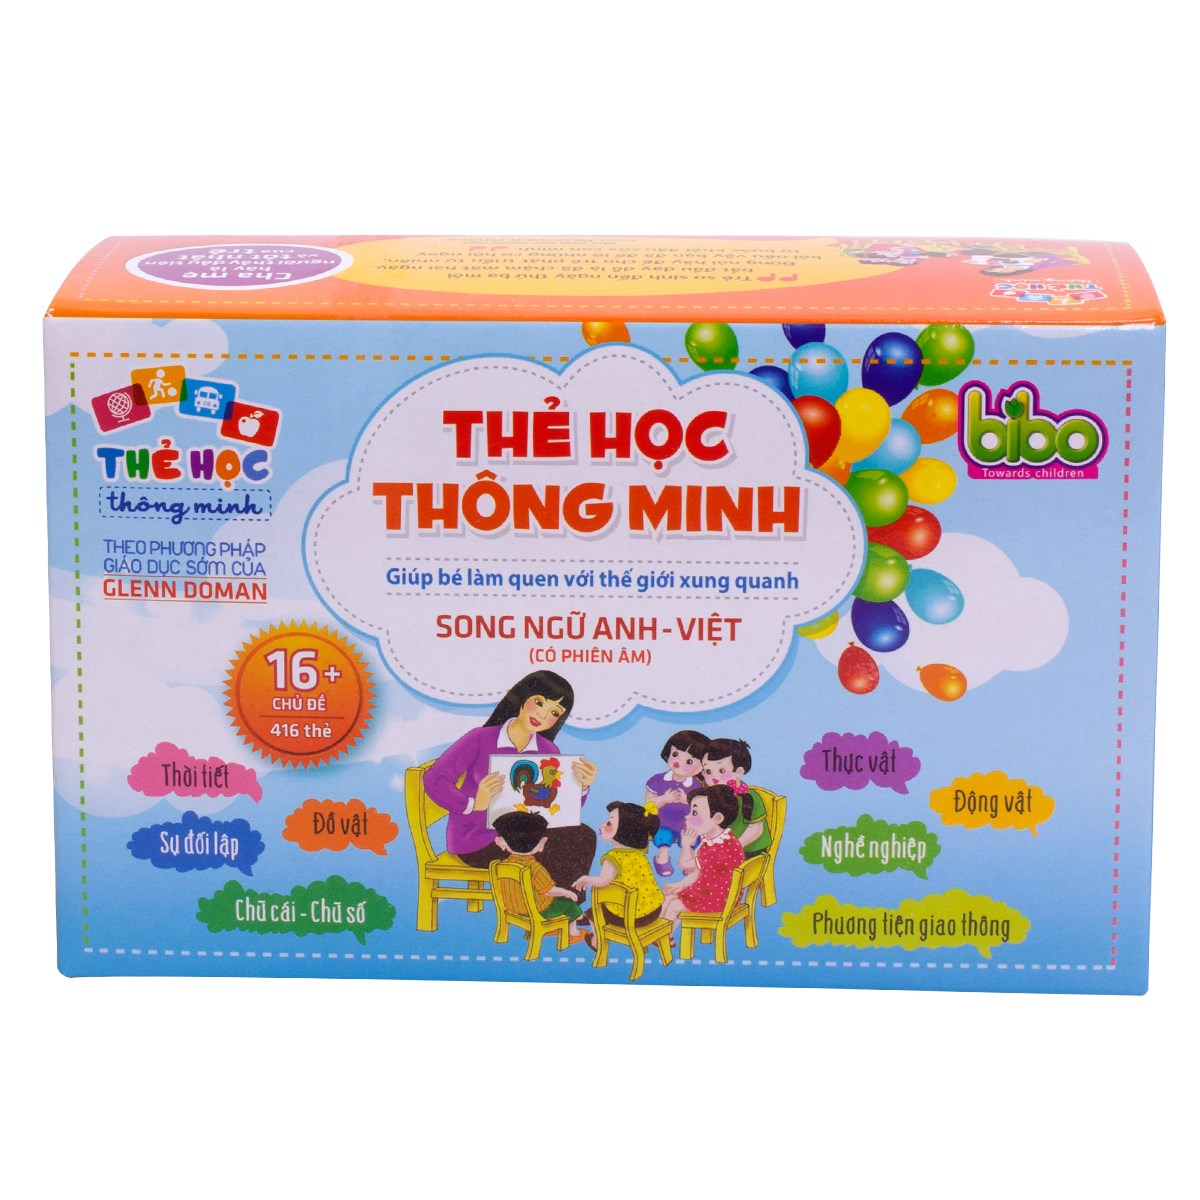 Bo the hoc thong minh 16 chu de (416 the)